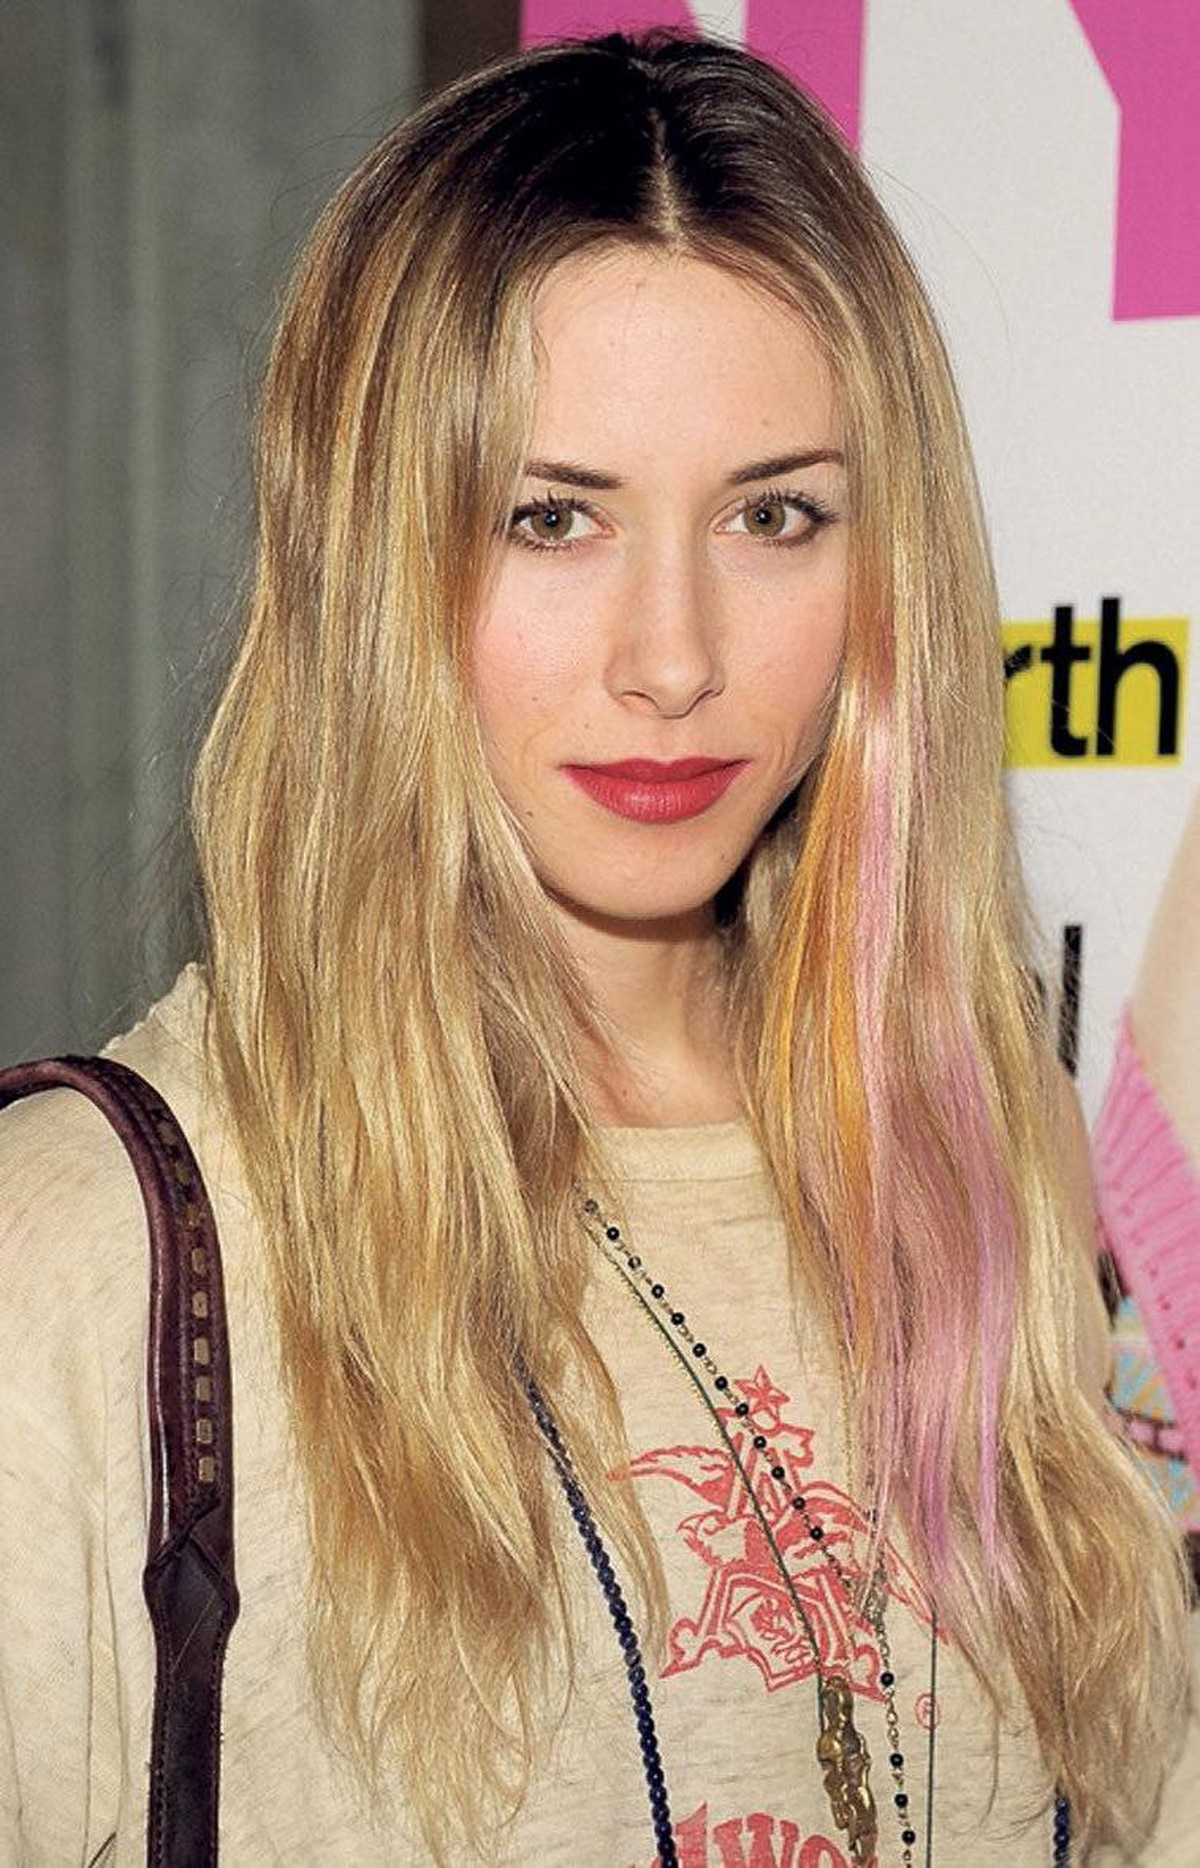 Gillian Zinser: California cool